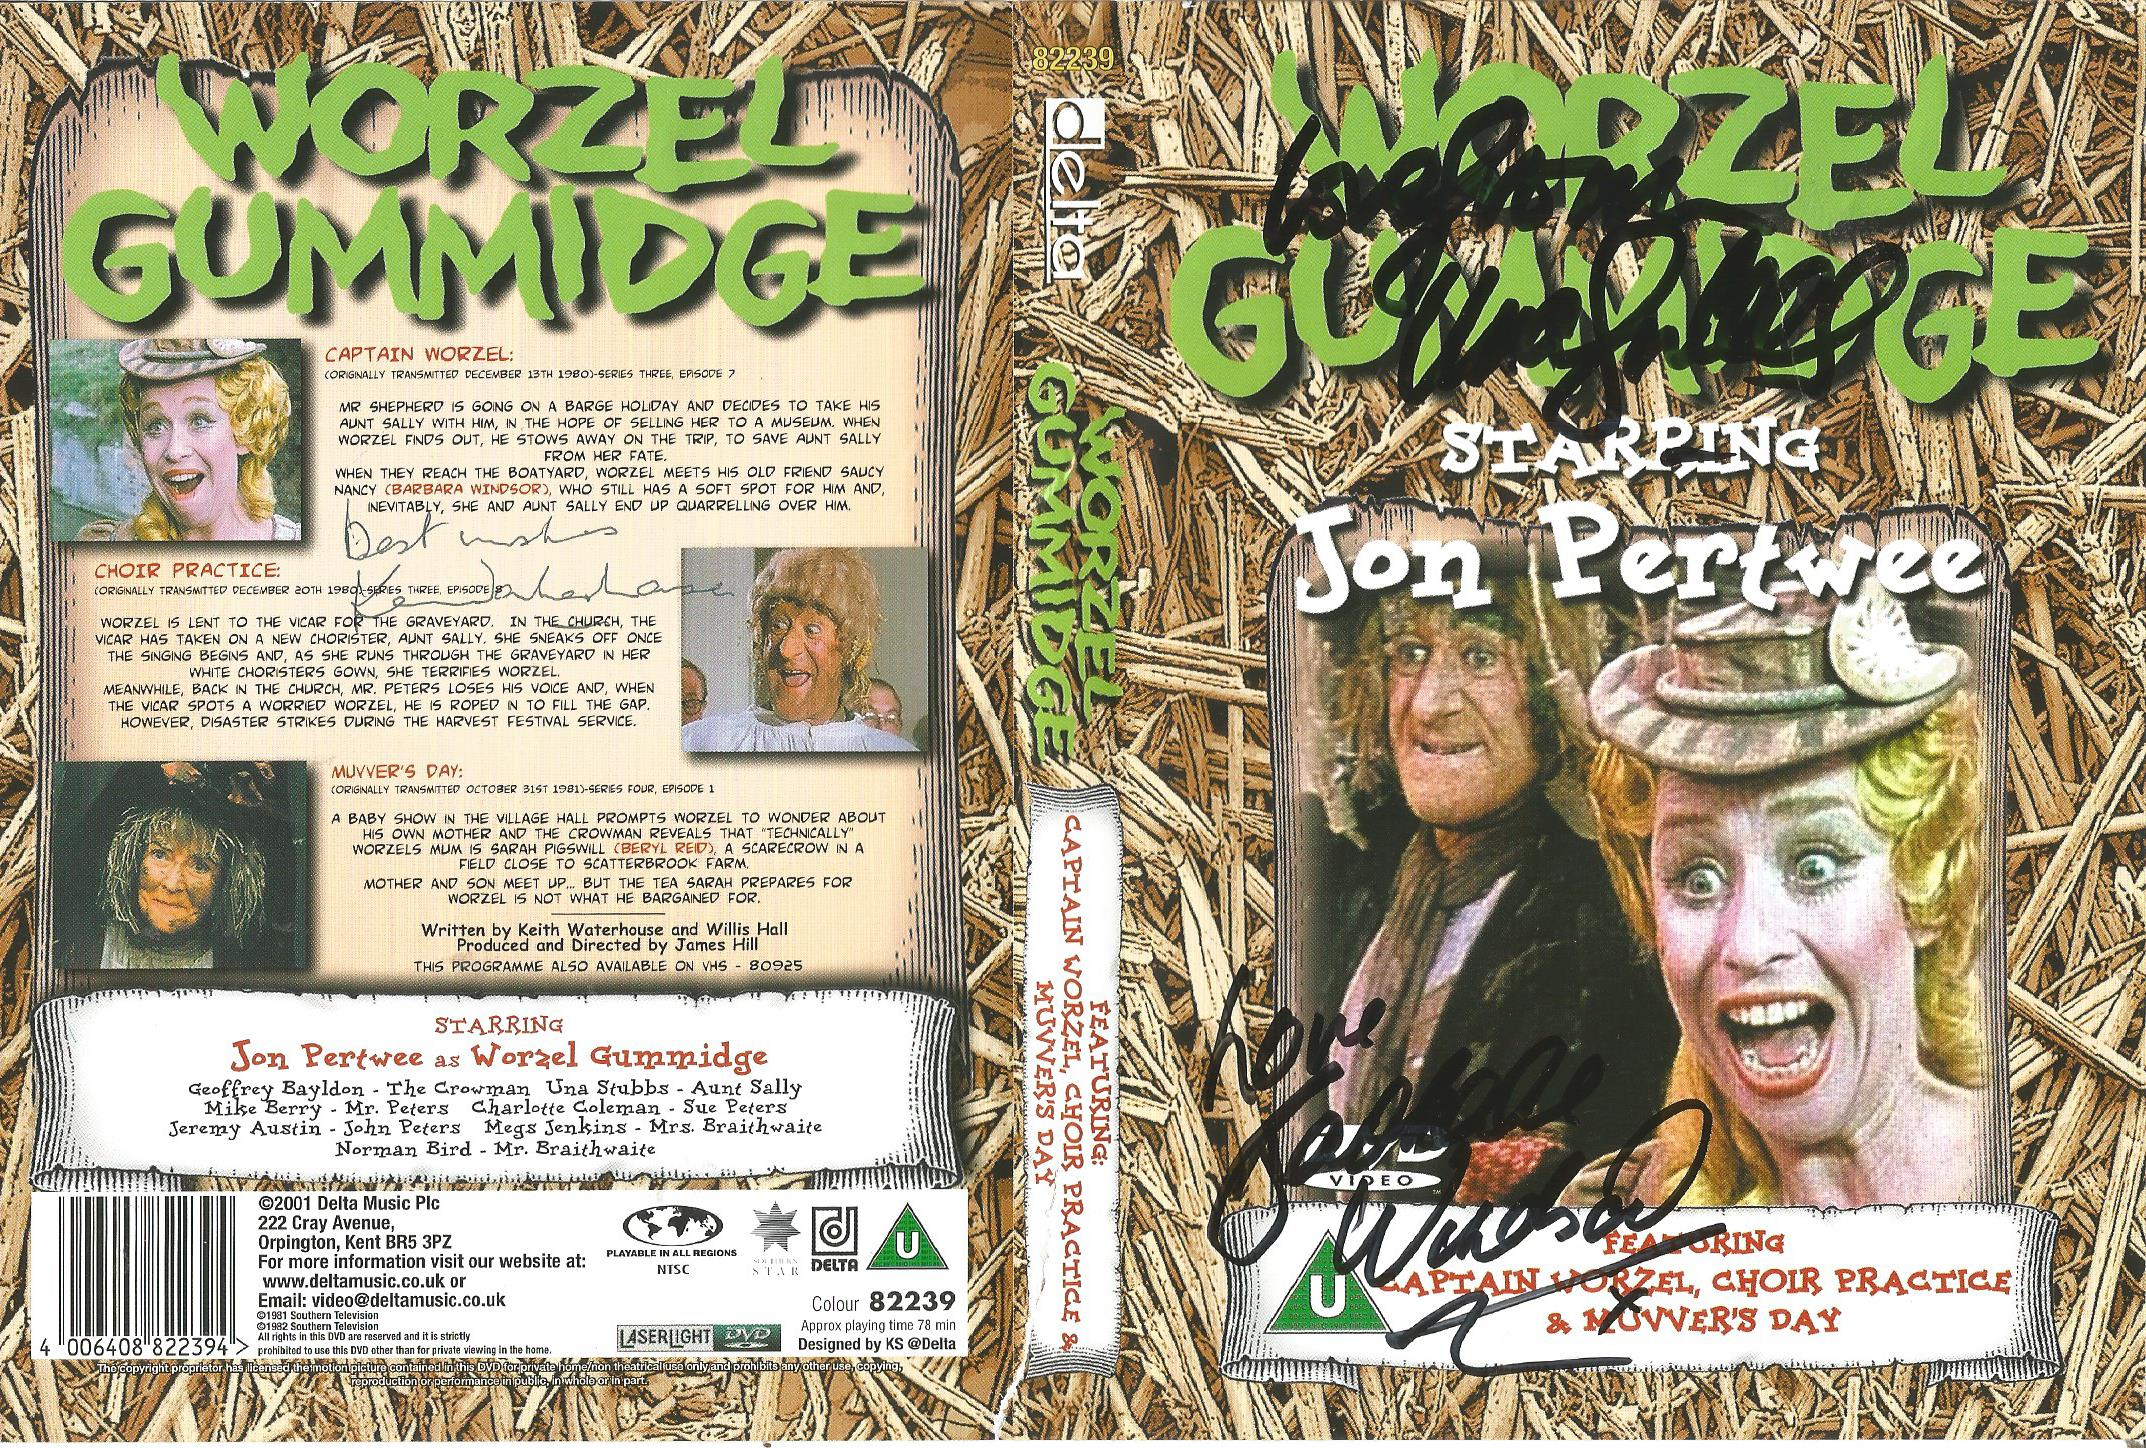 Lot 57 - Una Stubbs and 2 others signed Worzel Gummidge DVD slip case. DVD included. Good Condition. All